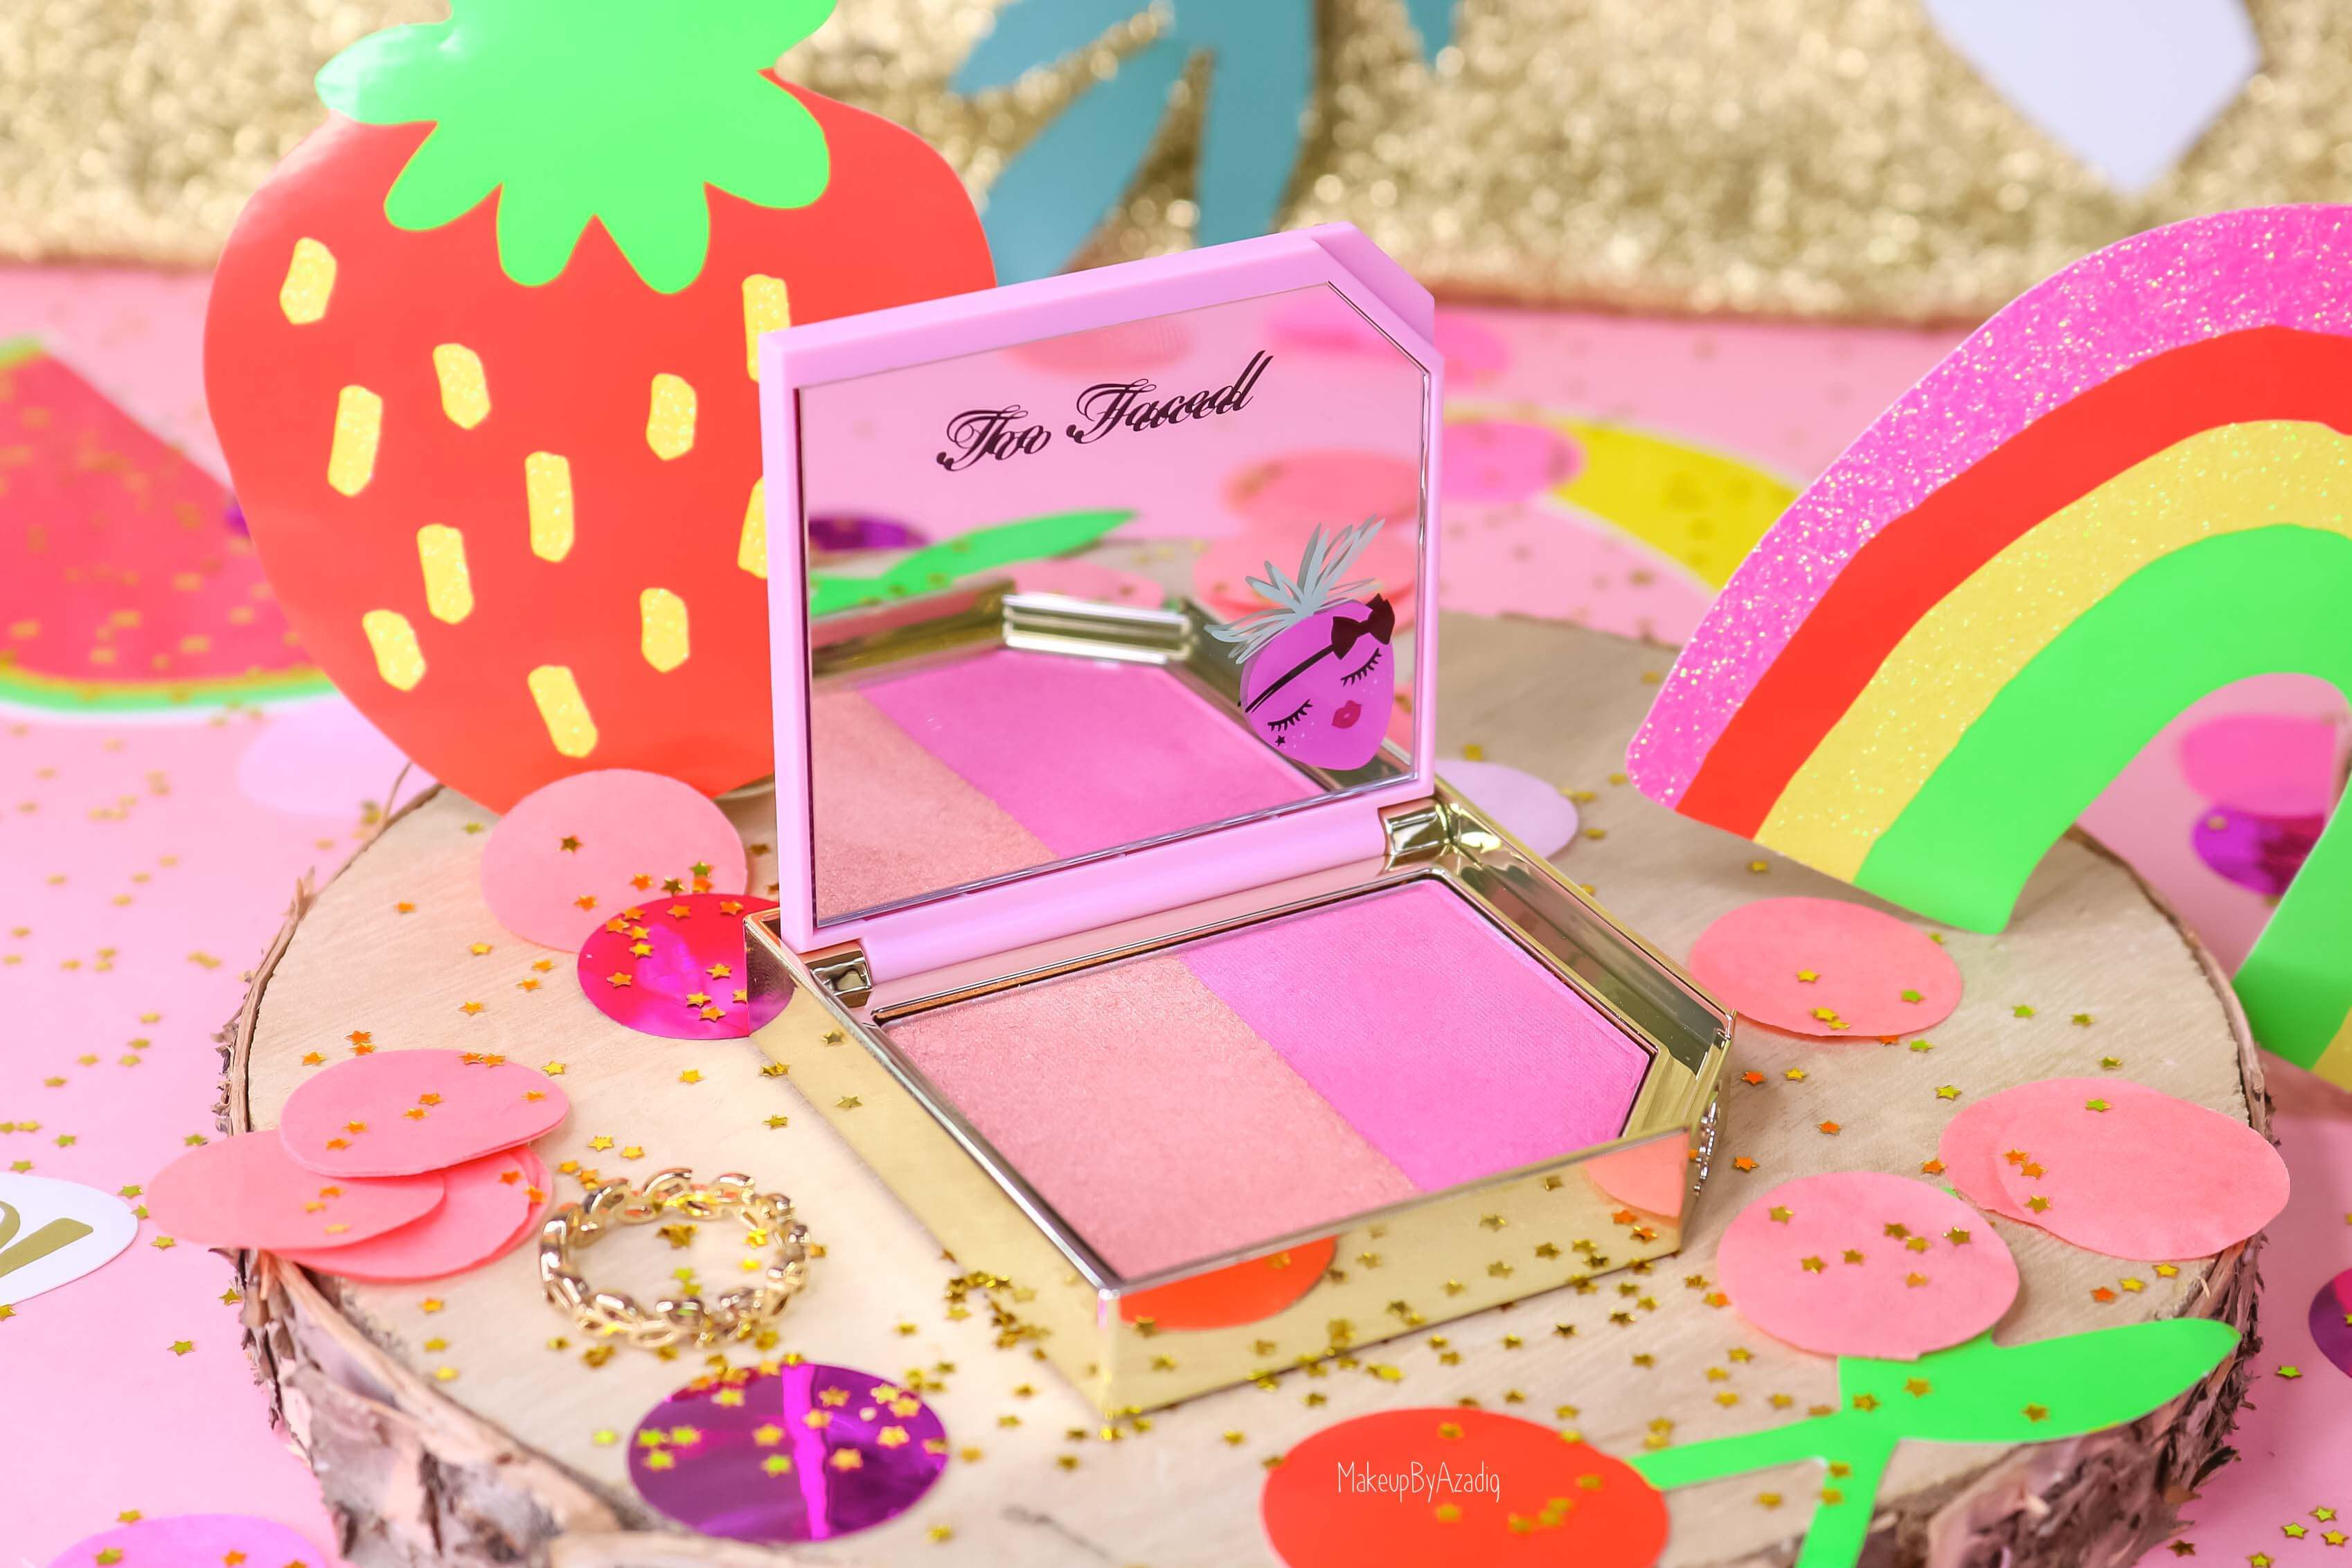 revue-collection-tutti-frutti-too-faced-blush-fruit-cocktail-strobeberry-sephora-france-makeupbyazadig-swatch-avis-prix-rose-pink